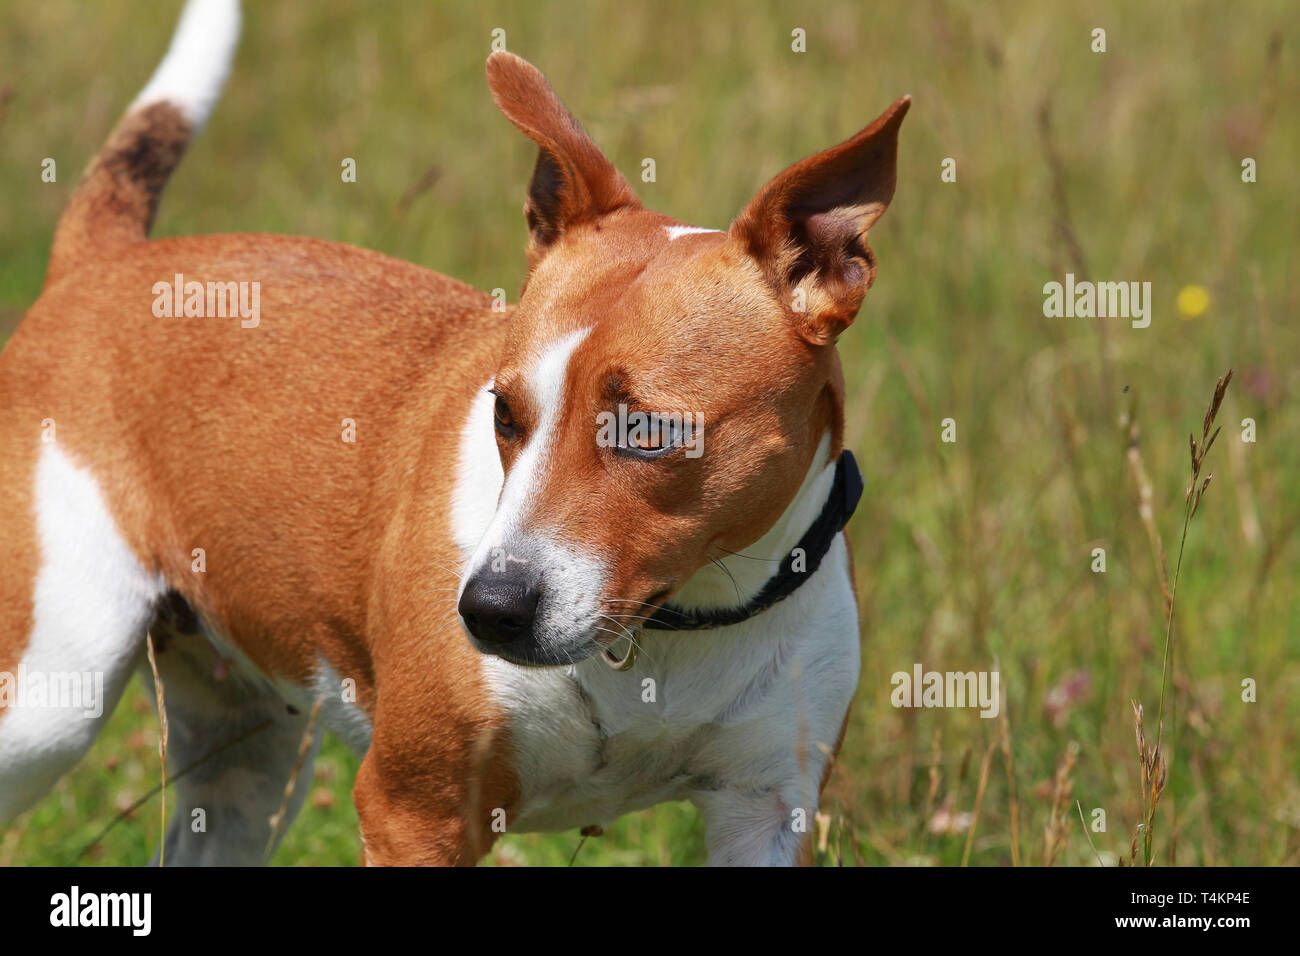 Jack Russsell terrier - Stock Image